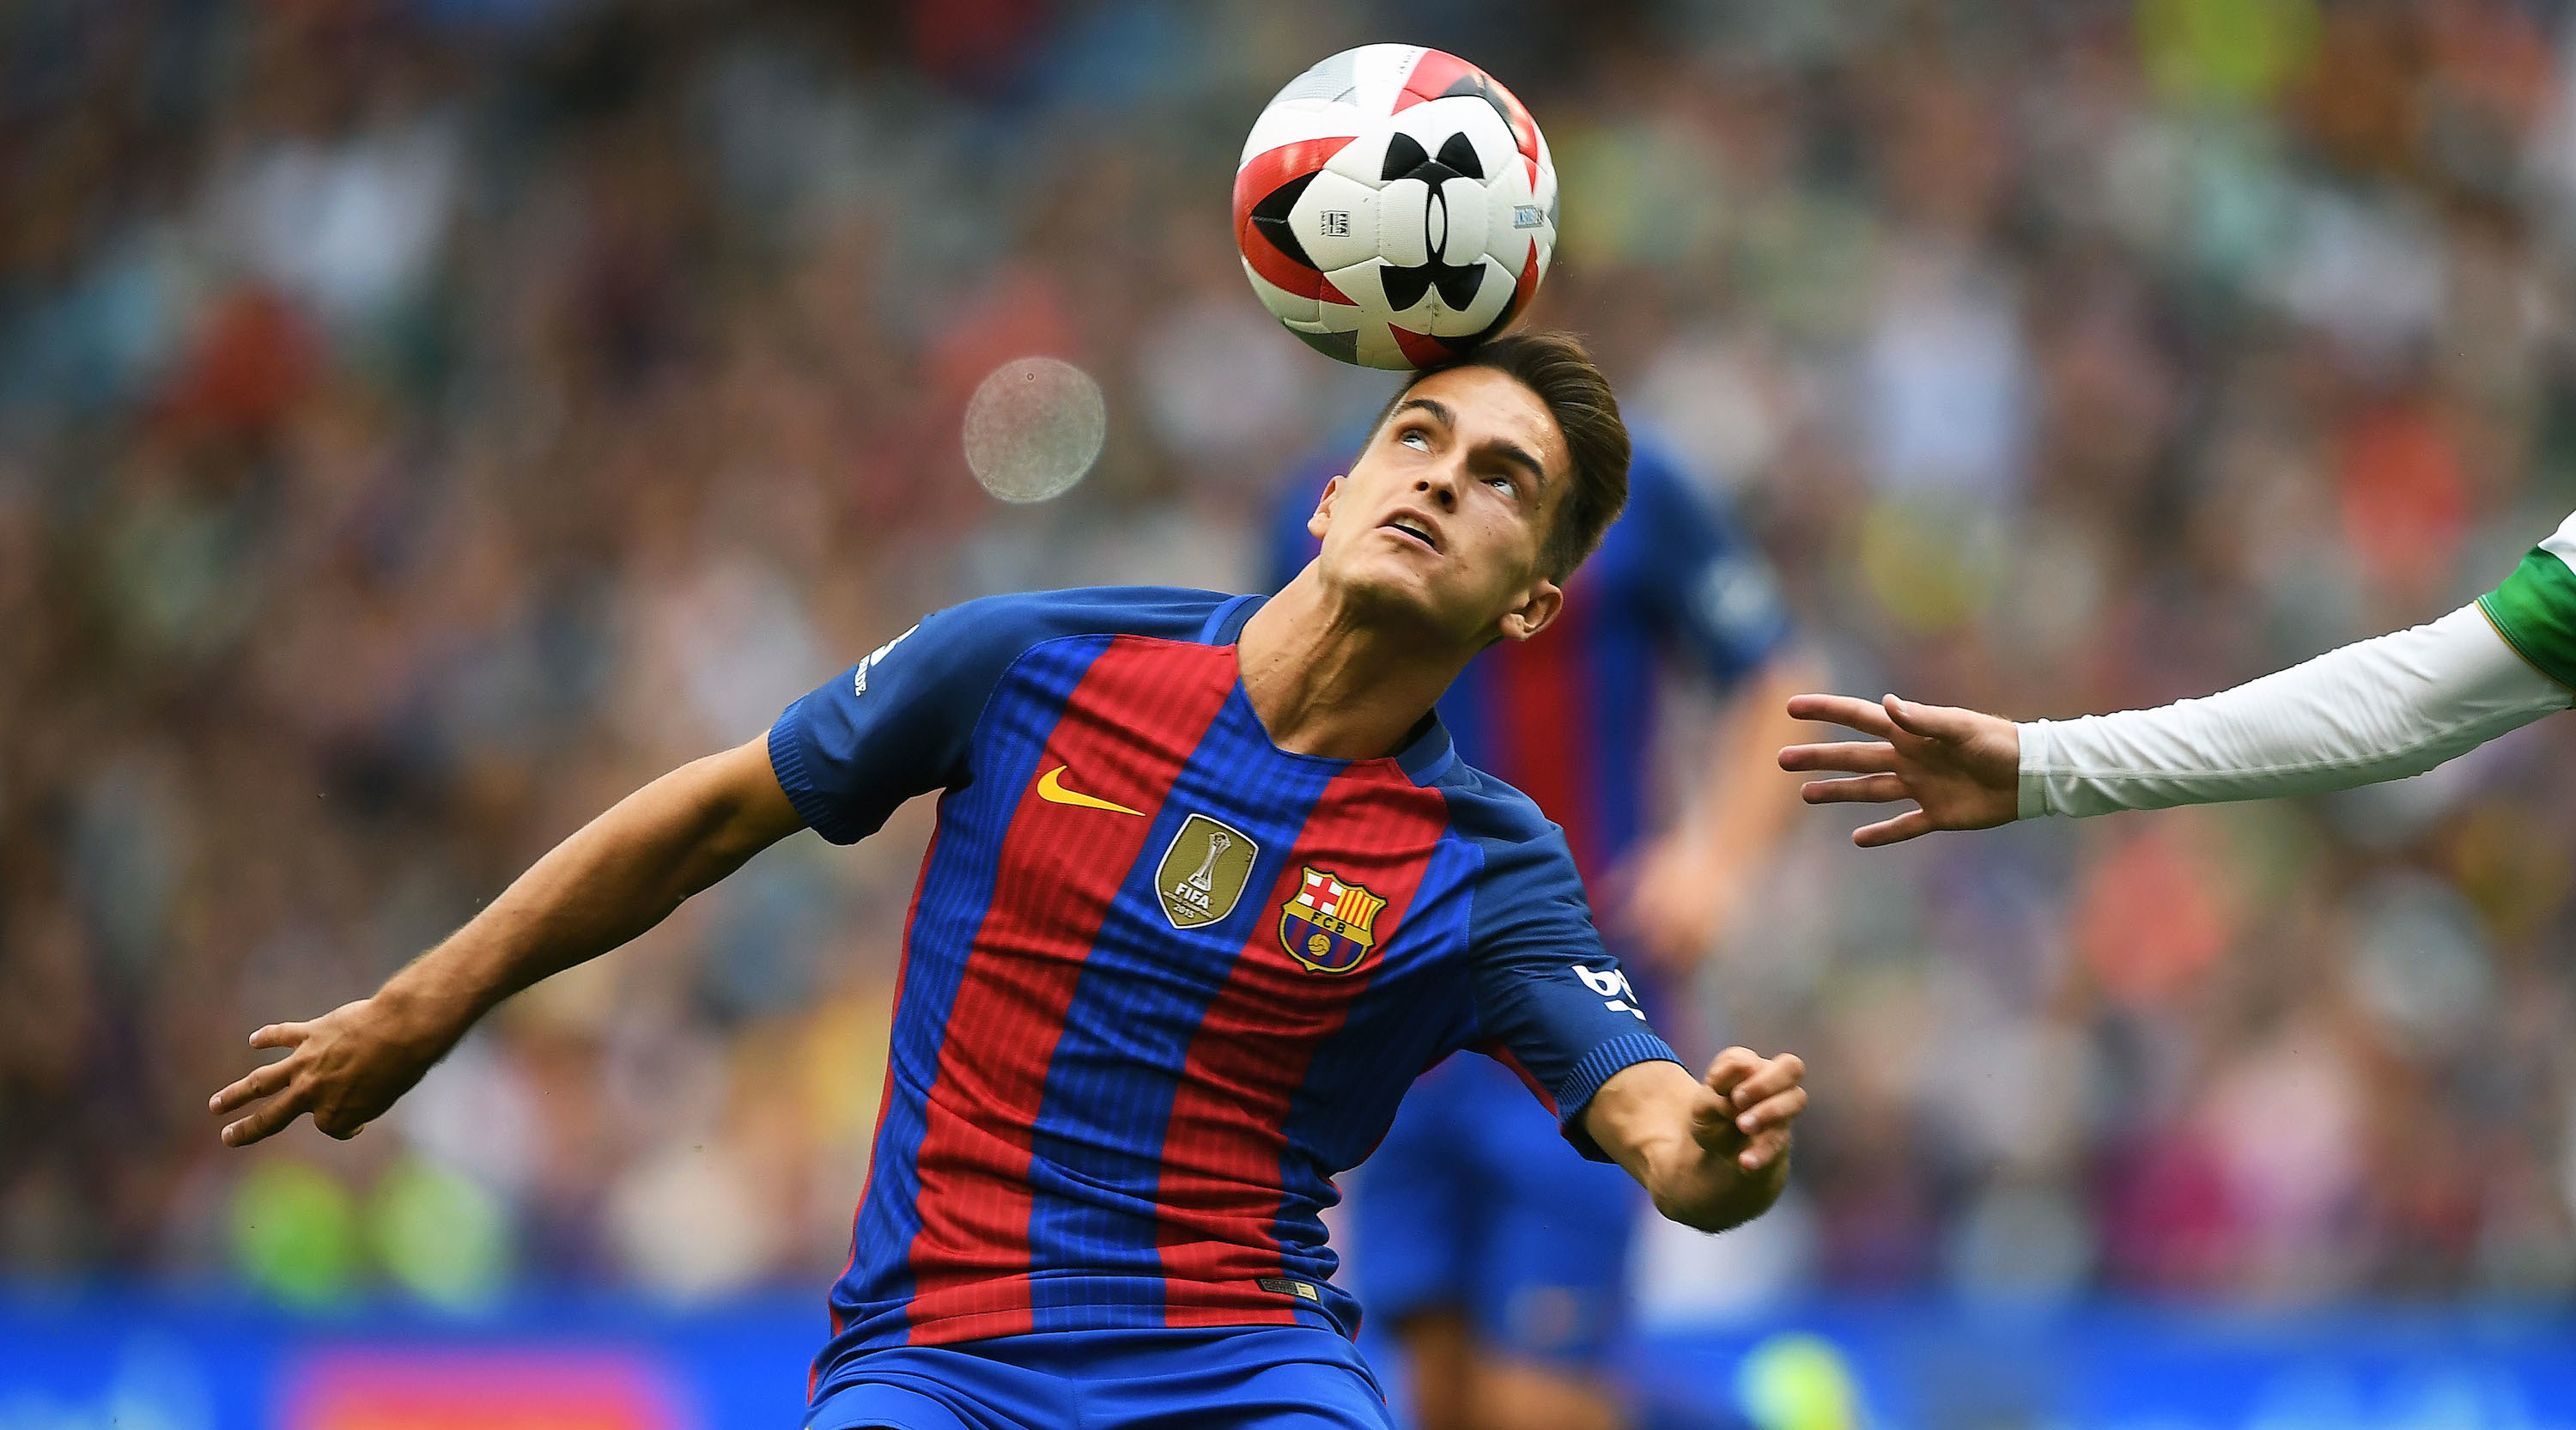 DUBLIN, IRELAND - JULY 30: Denis Suarez of Barcelona during the International Champions Cup series match between Barcelona and Celtic at Aviva Stadium on July 30, 2016 in Dublin, Ireland. (Photo by Charles McQuillan/Getty Images)